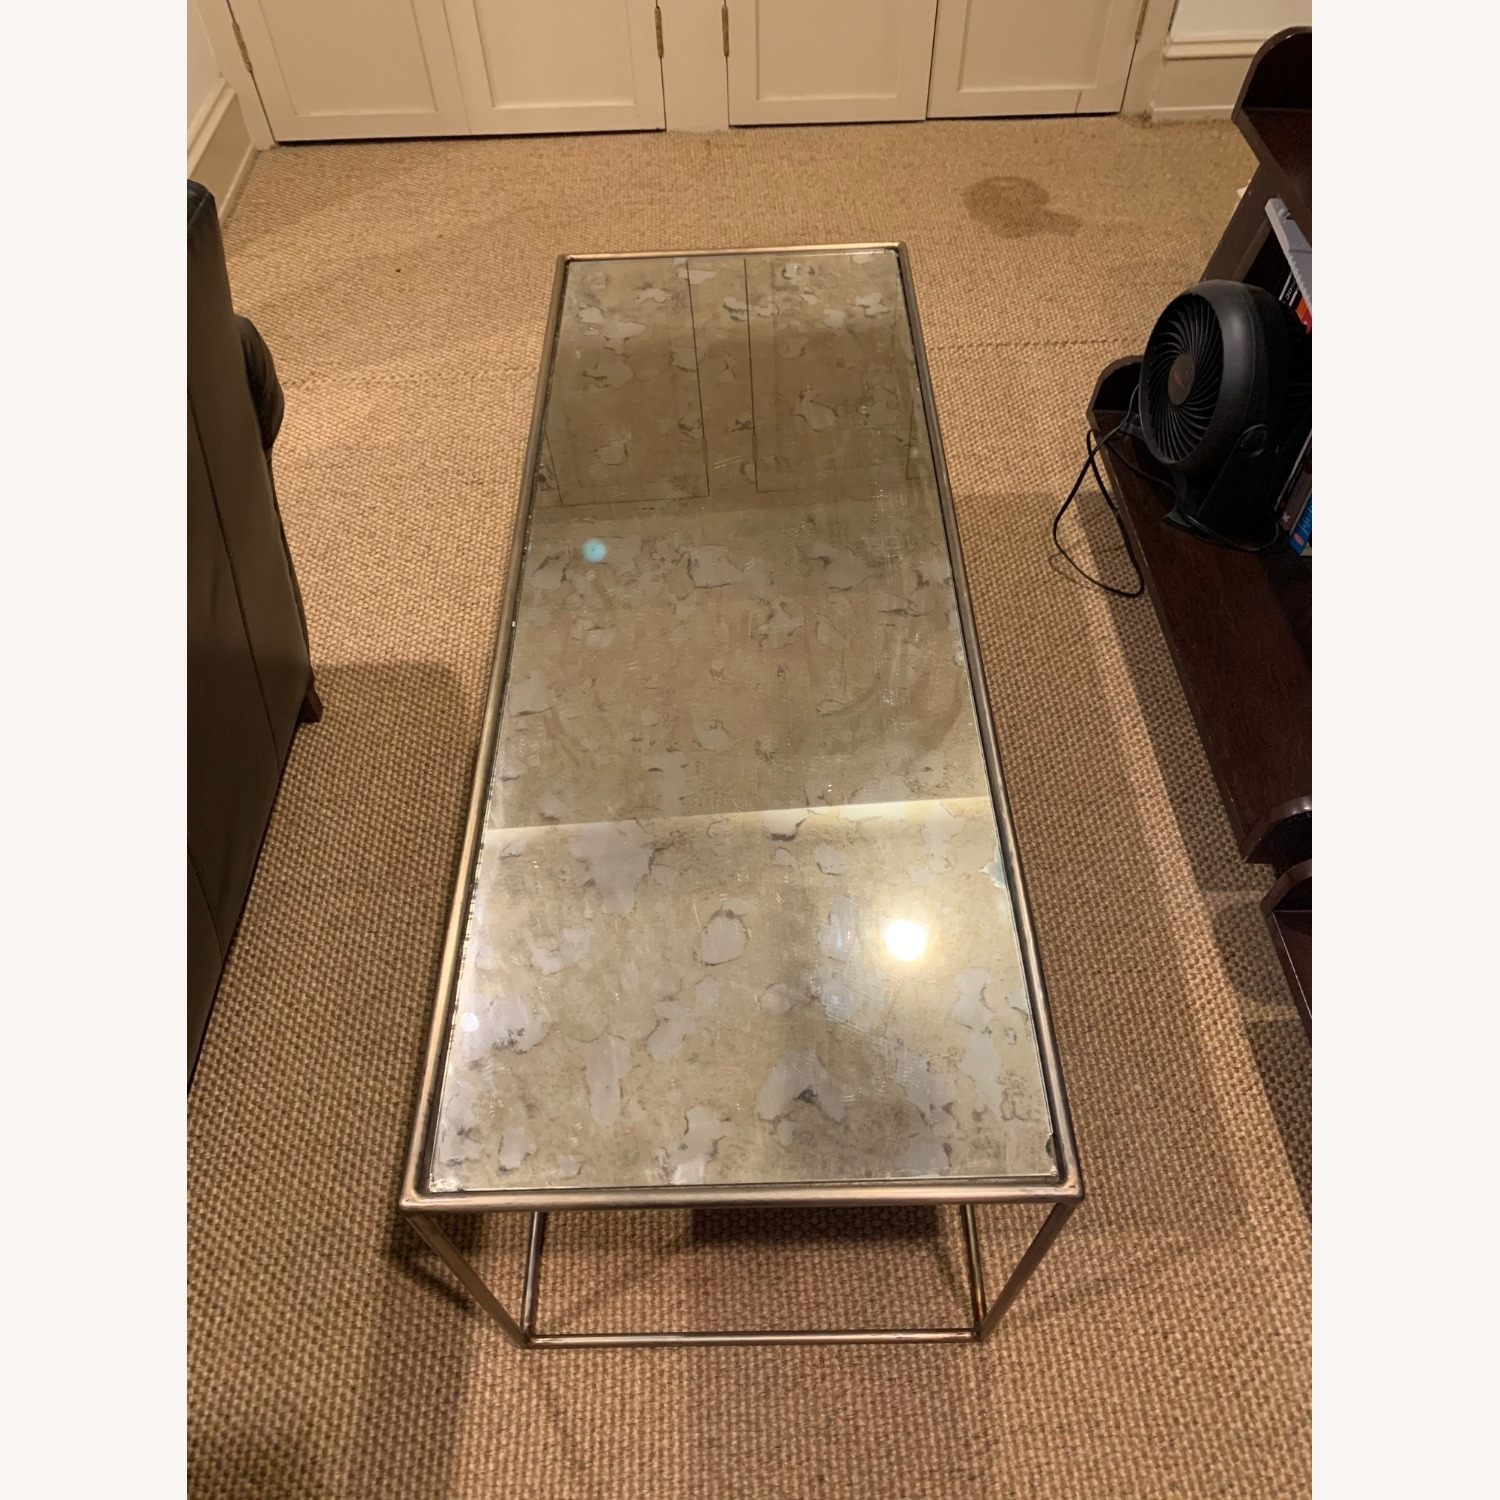 Arteriors Othello Coffee Table - image-2